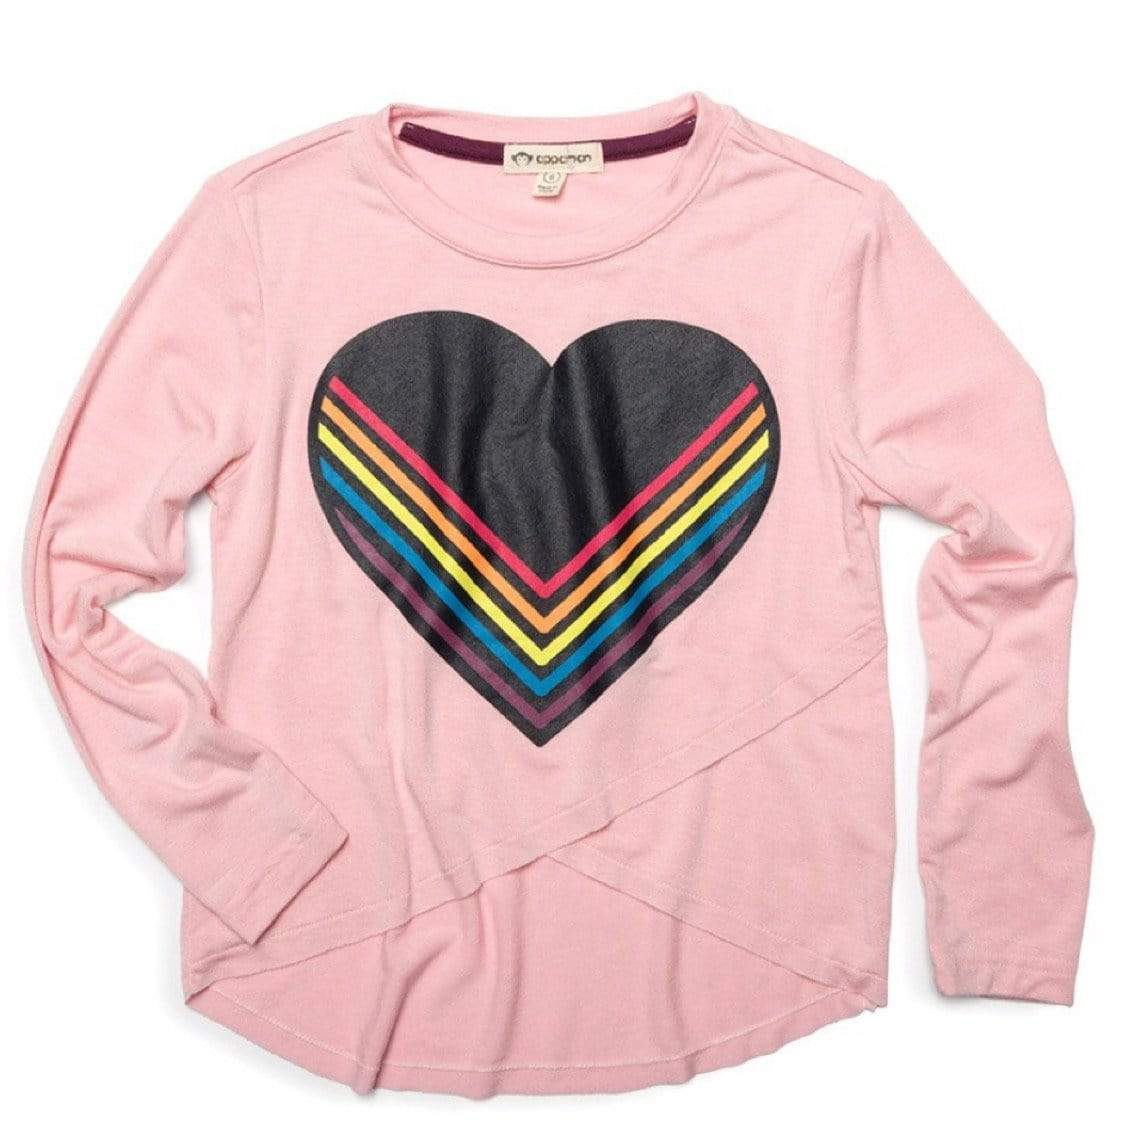 U1PPT Appaman Cosmic Pink Penelope Long Sleeve Tee Long Sleeve Shirts Appaman